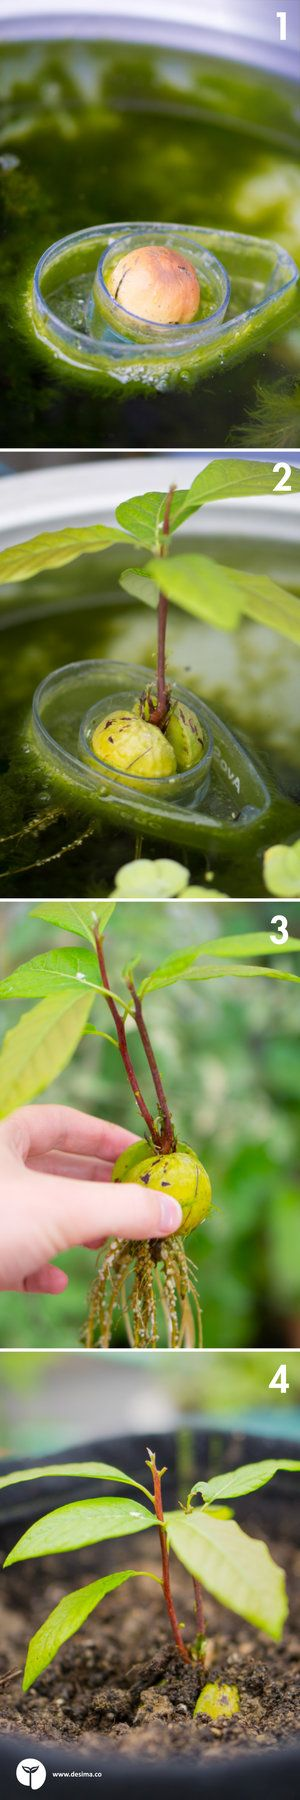 How to grow an avocado tree from seed in 4 easy steps — desima